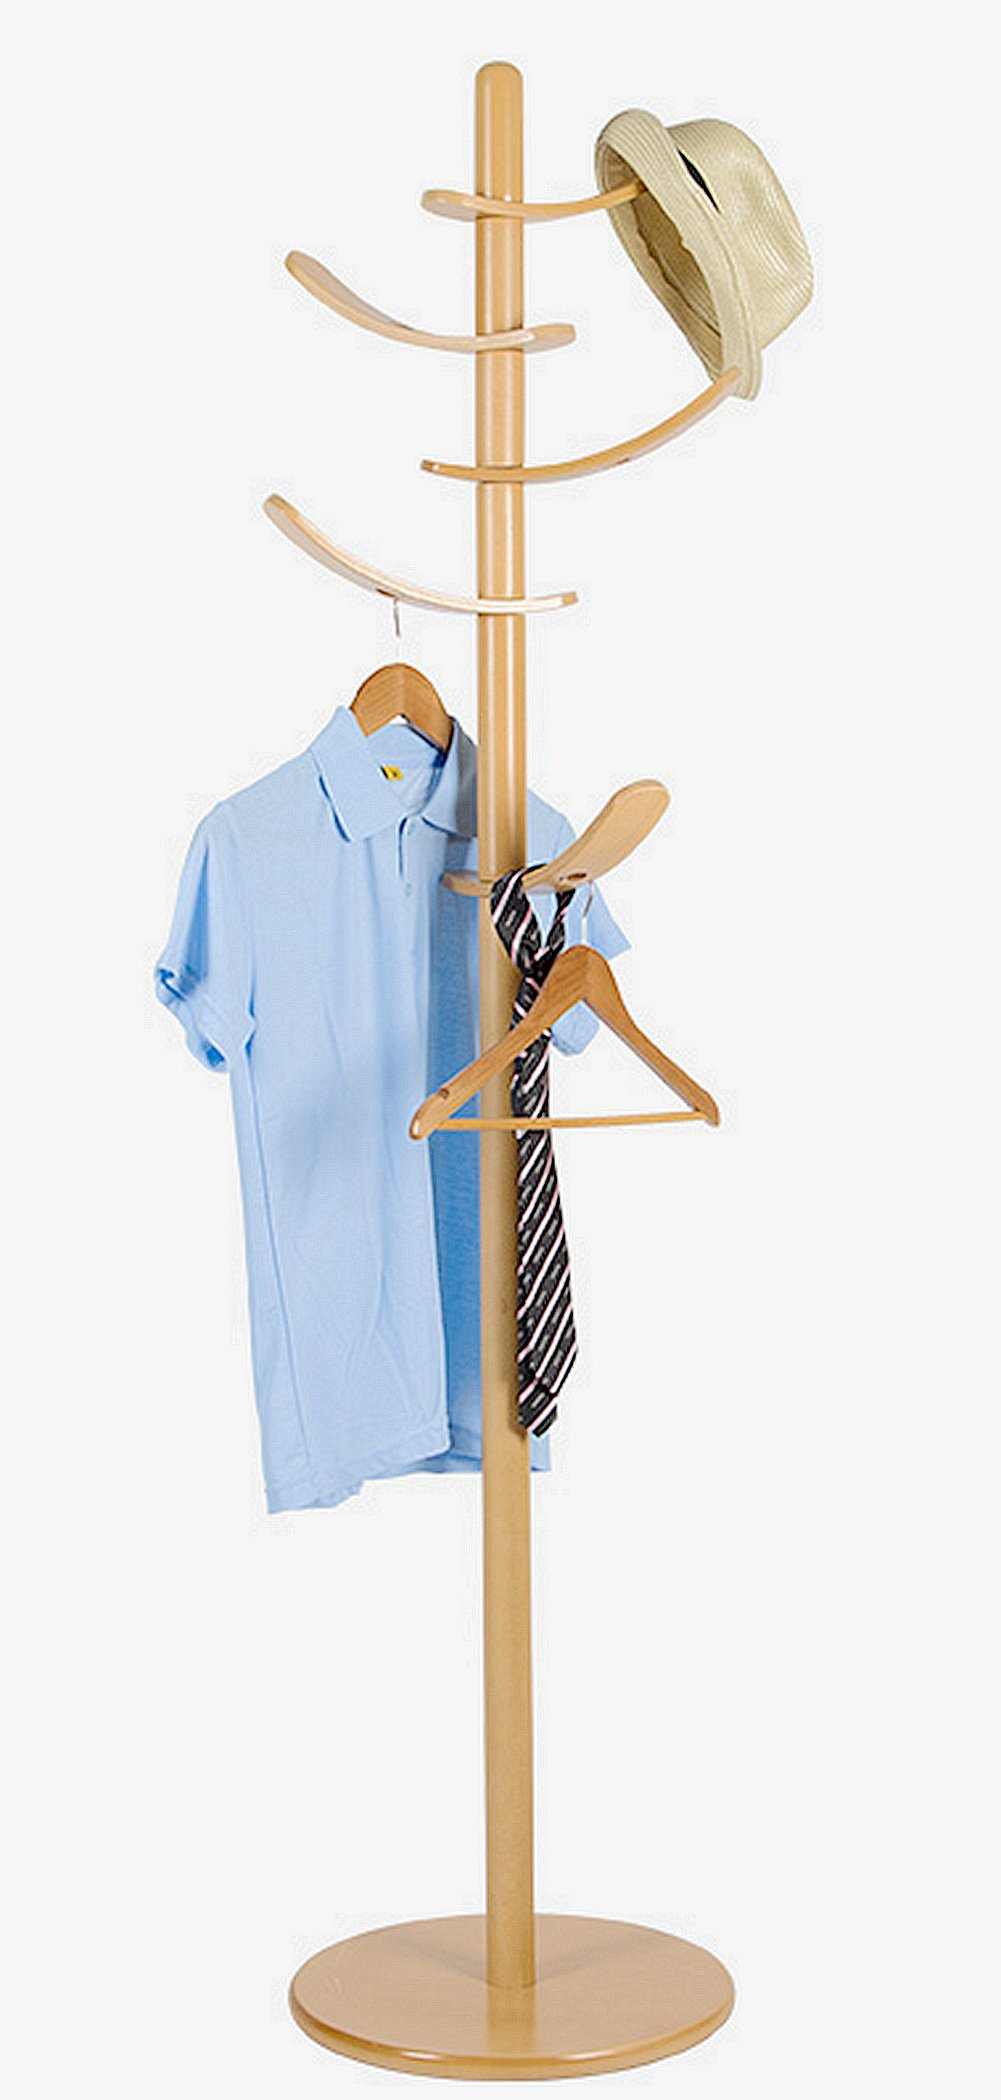 Yaker's collection Solid Wood Coat Rack Sail Rotated 5 Hooks Hall Tree Children Safety Furniture(Nature)